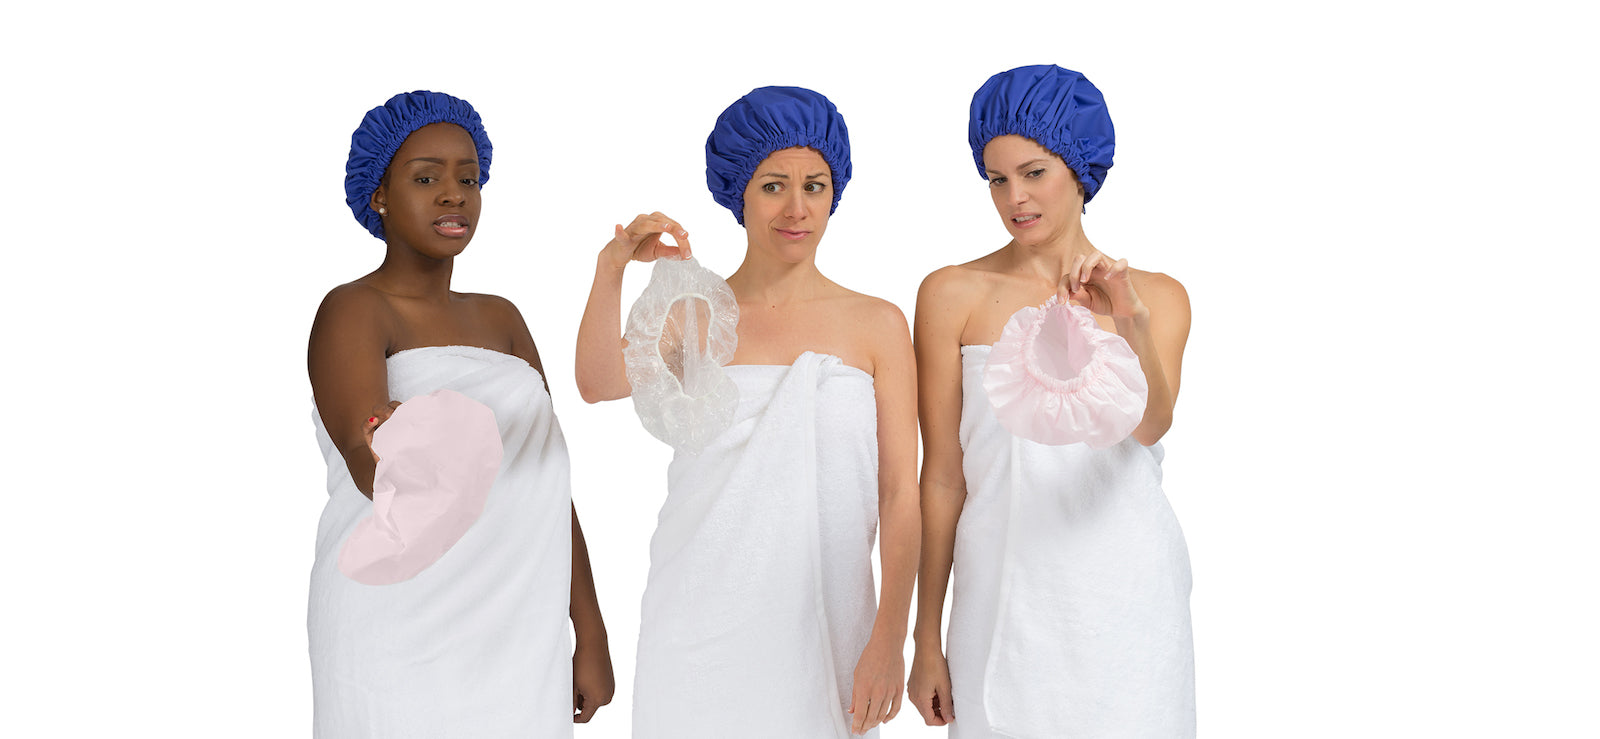 Models wearing Superpower Cap - shower cap to protect a blow-dry, braids or curly hairstyles from humidity, WP/BR fabric